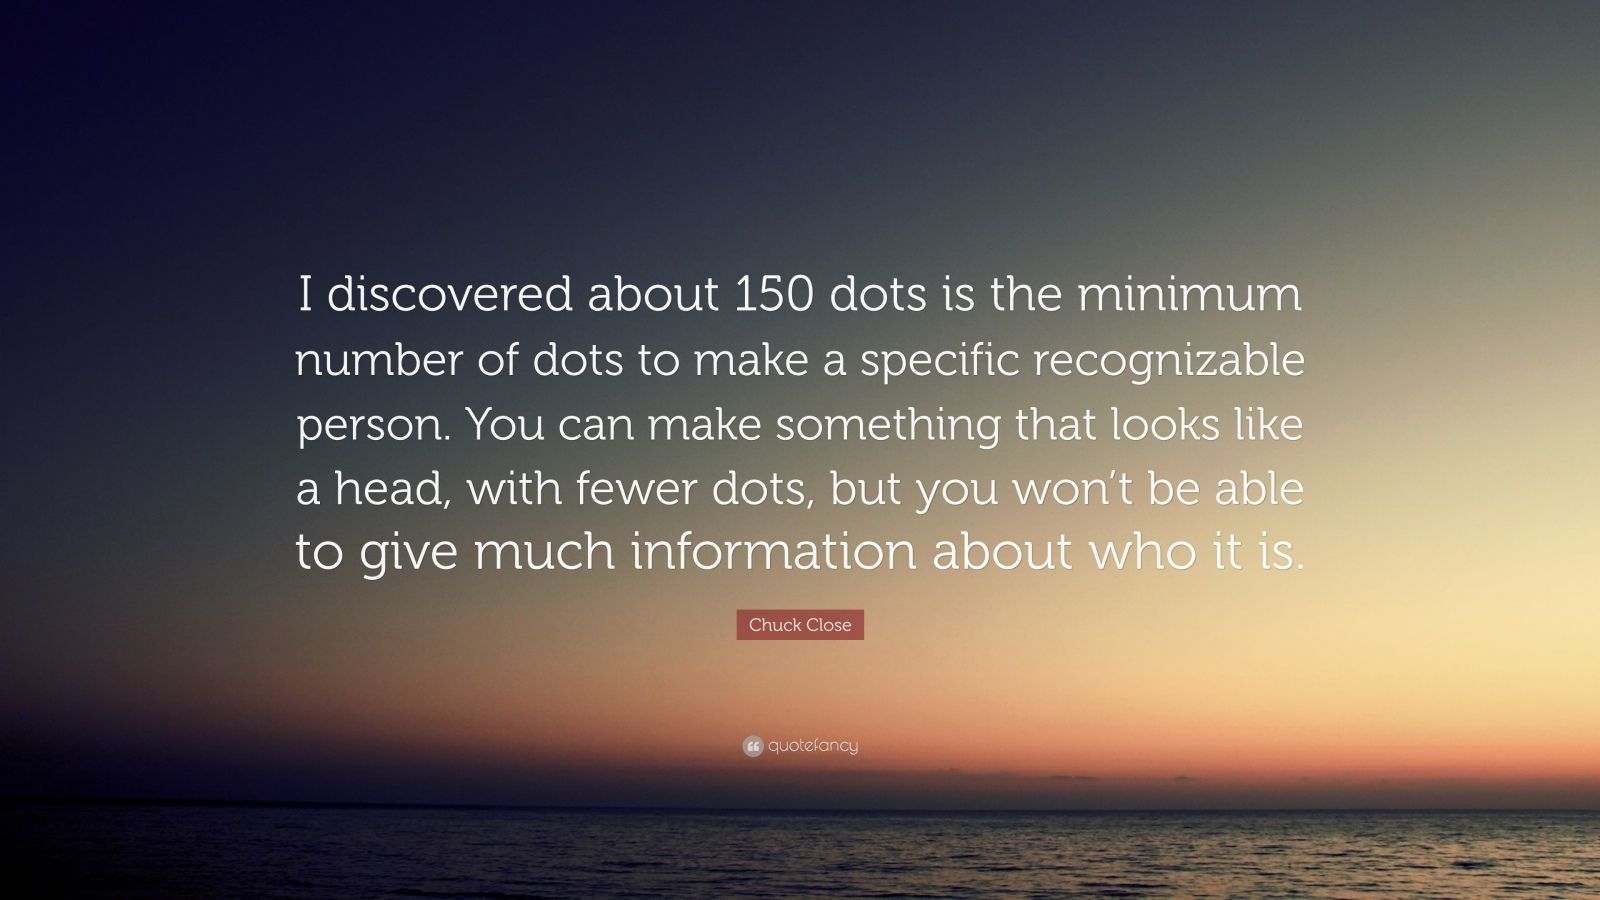 "Chuck Close Quote: ""I discovered about 150 dots is the minimum number of dots to make a specific recognizable person. You can make something that looks like a head, with fewer dots, but you won't be able to give much information about who it is."""